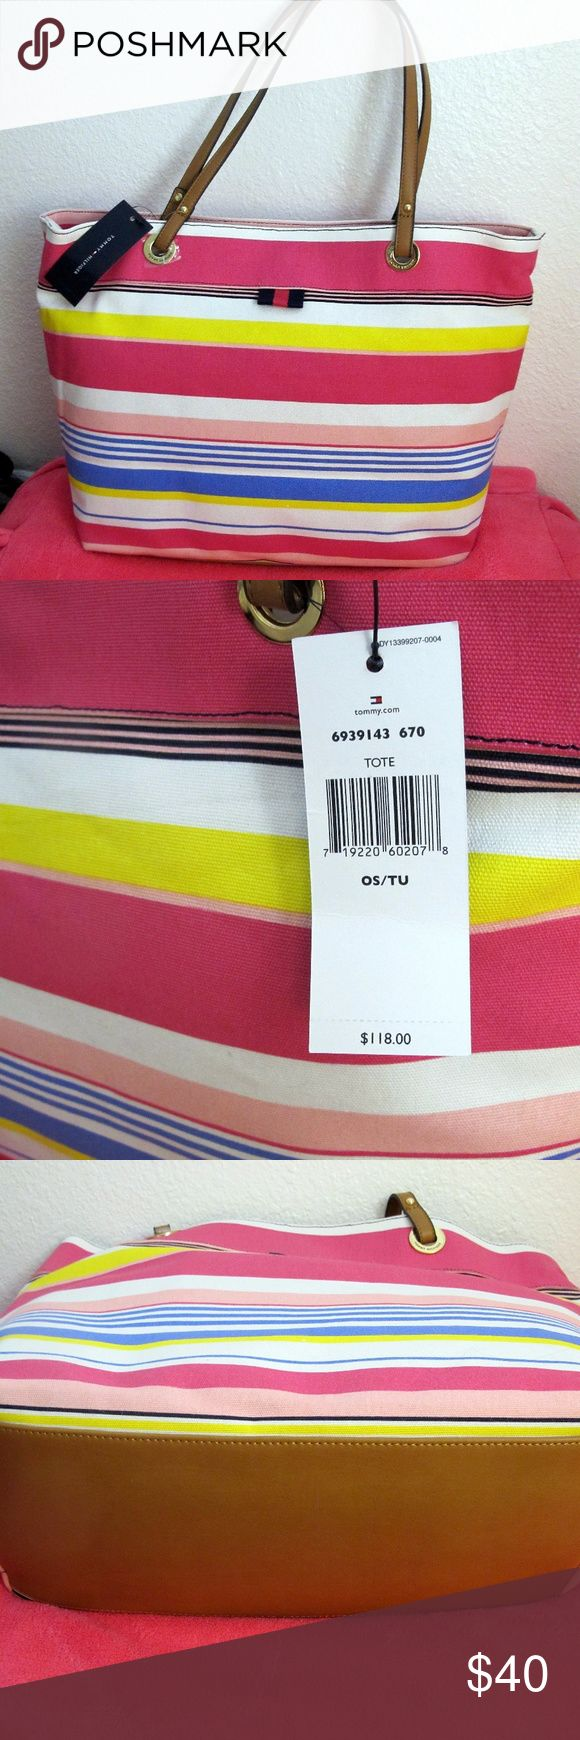 Tommy Hilfiger Tote NWT NWT Tommy Hilfiger Tote Bright beautiful colors same day shipping Tommy Hilfiger Bags Totes